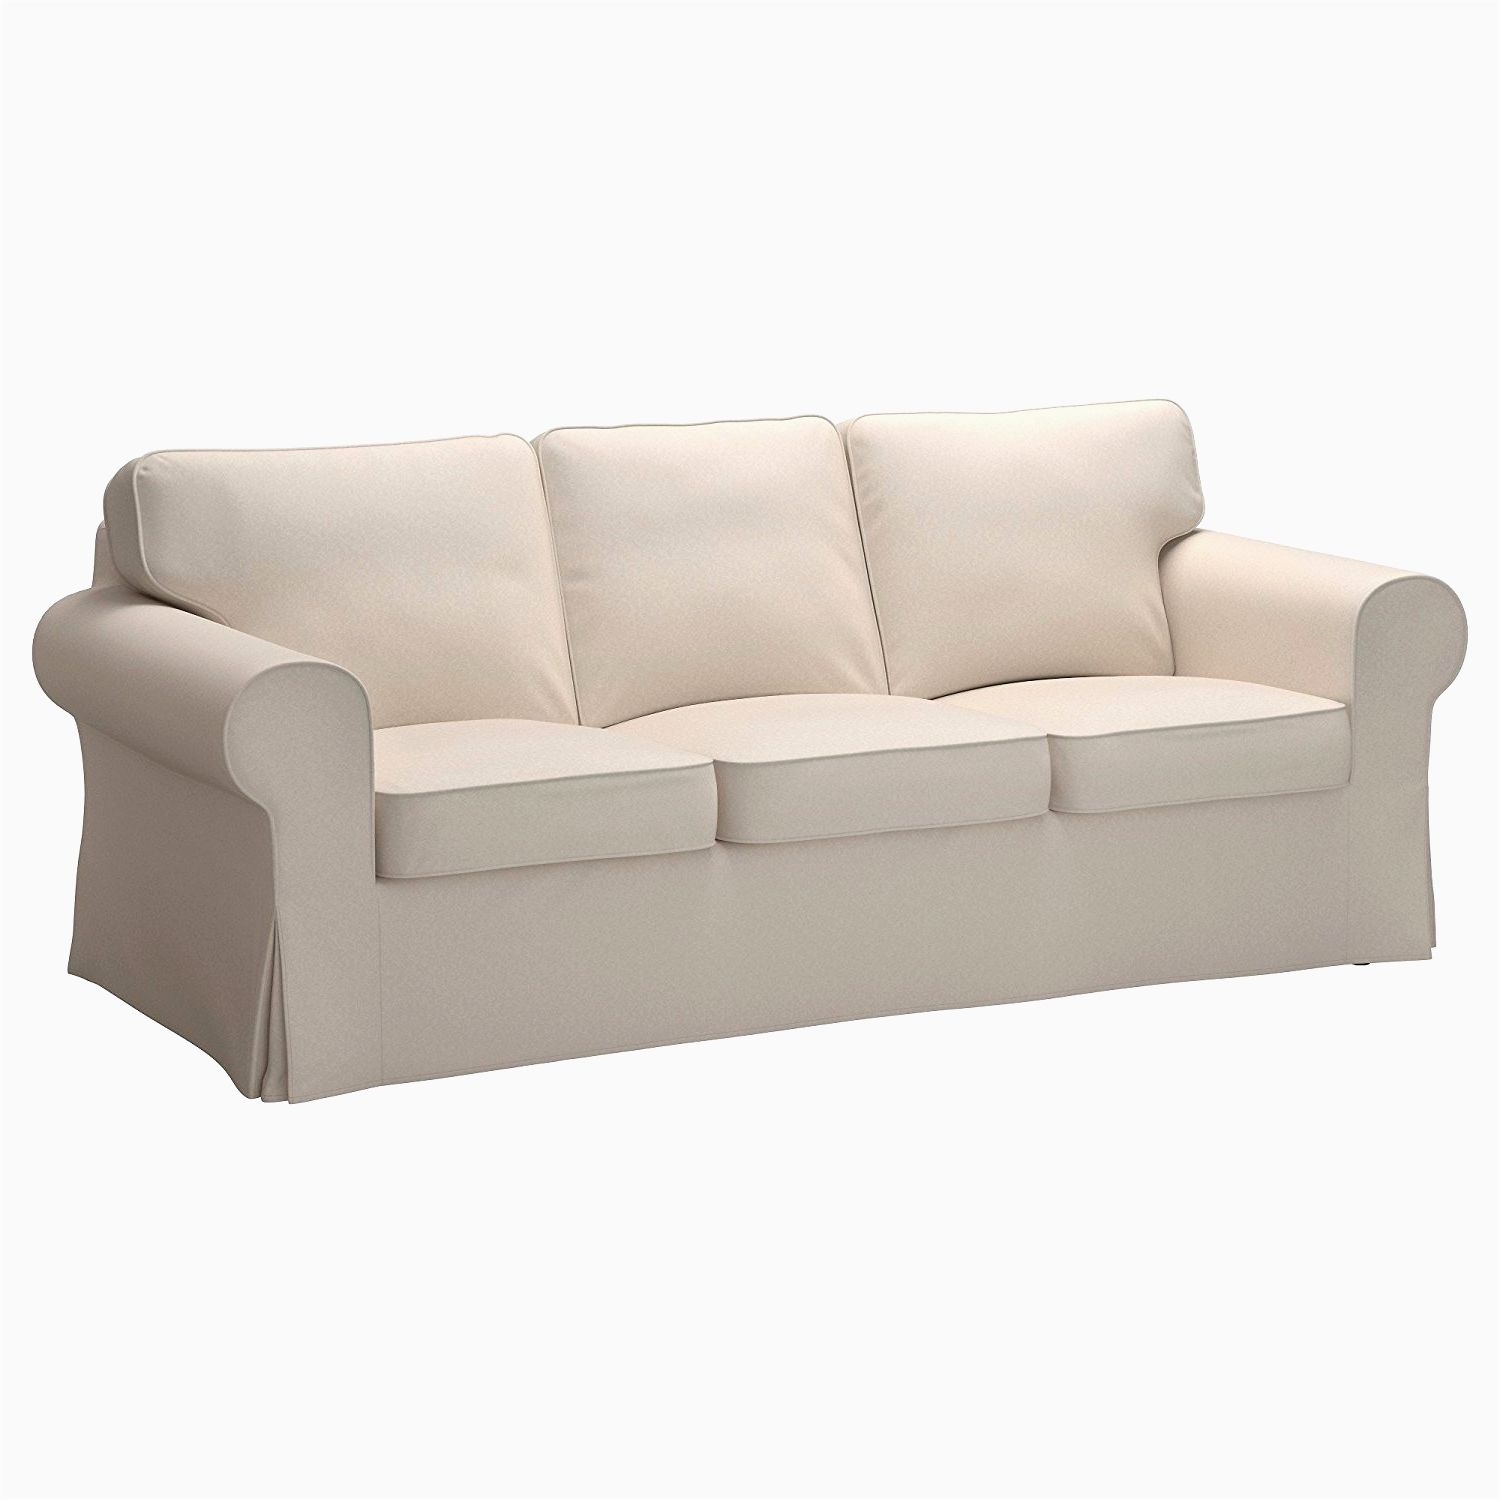 sensational ikea slipcover sofa model-Lovely Ikea Slipcover sofa Construction